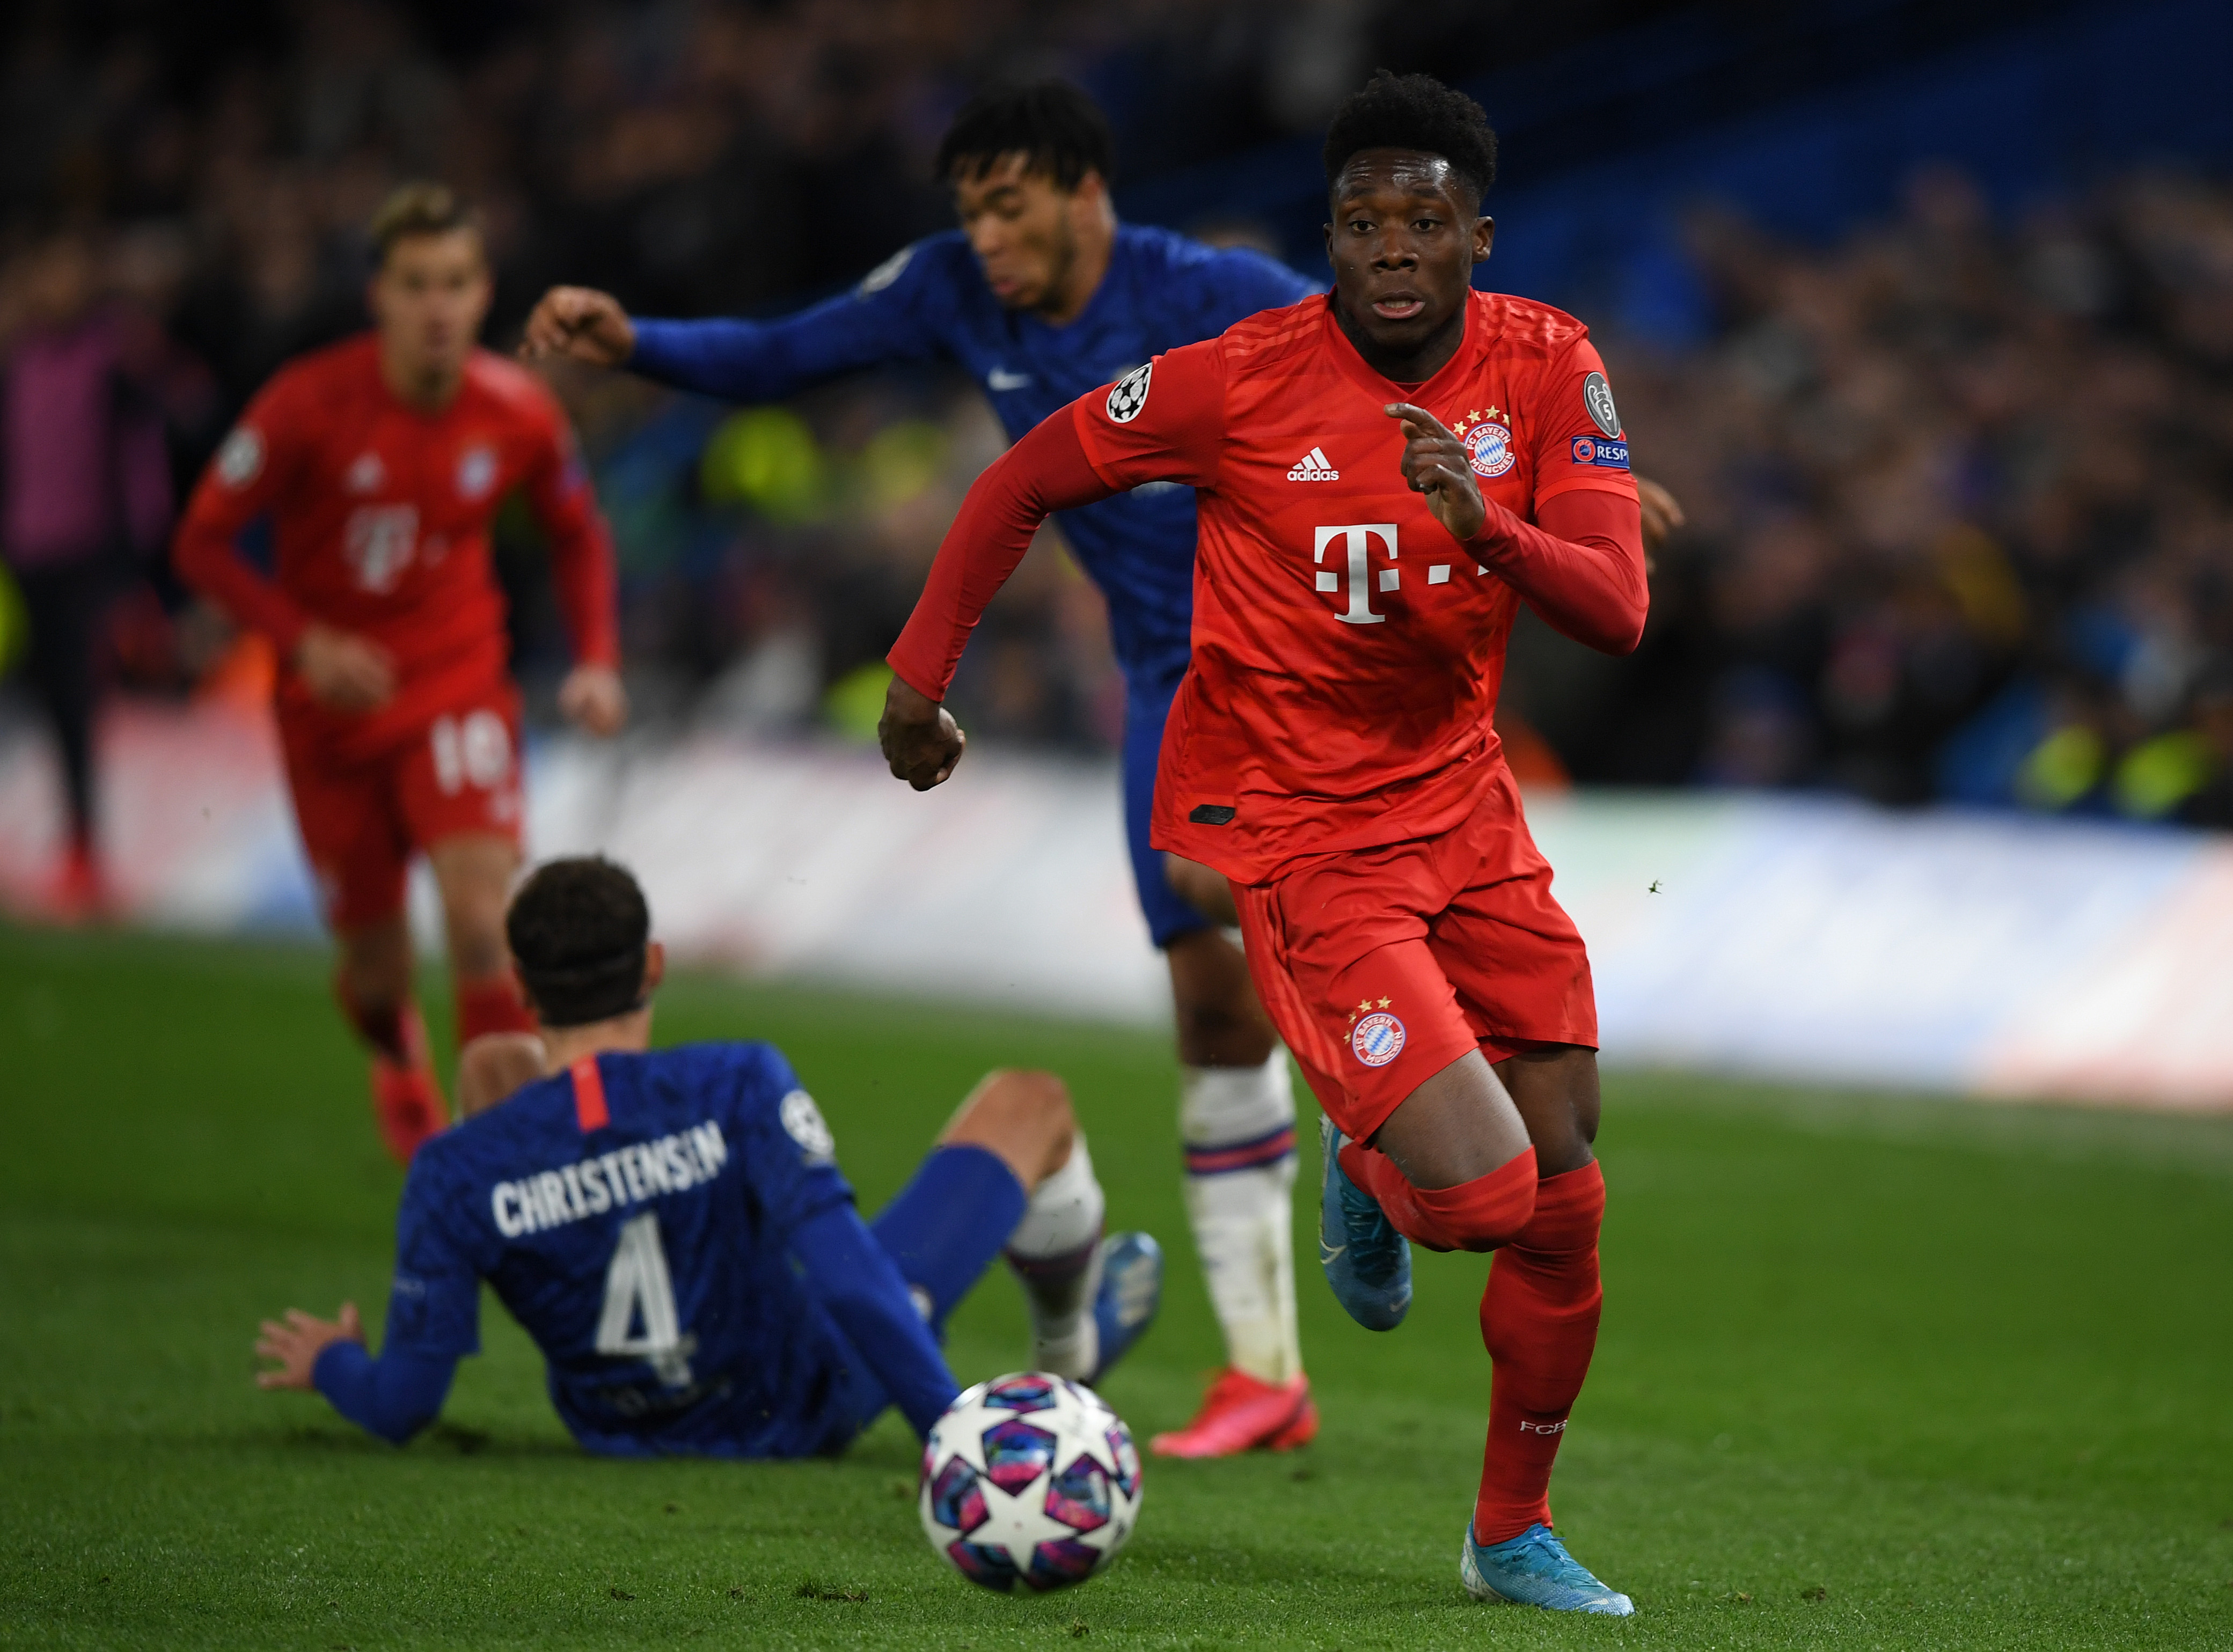 Bayern S Alphonso Davies On His Past And Being Happy Cnn Video